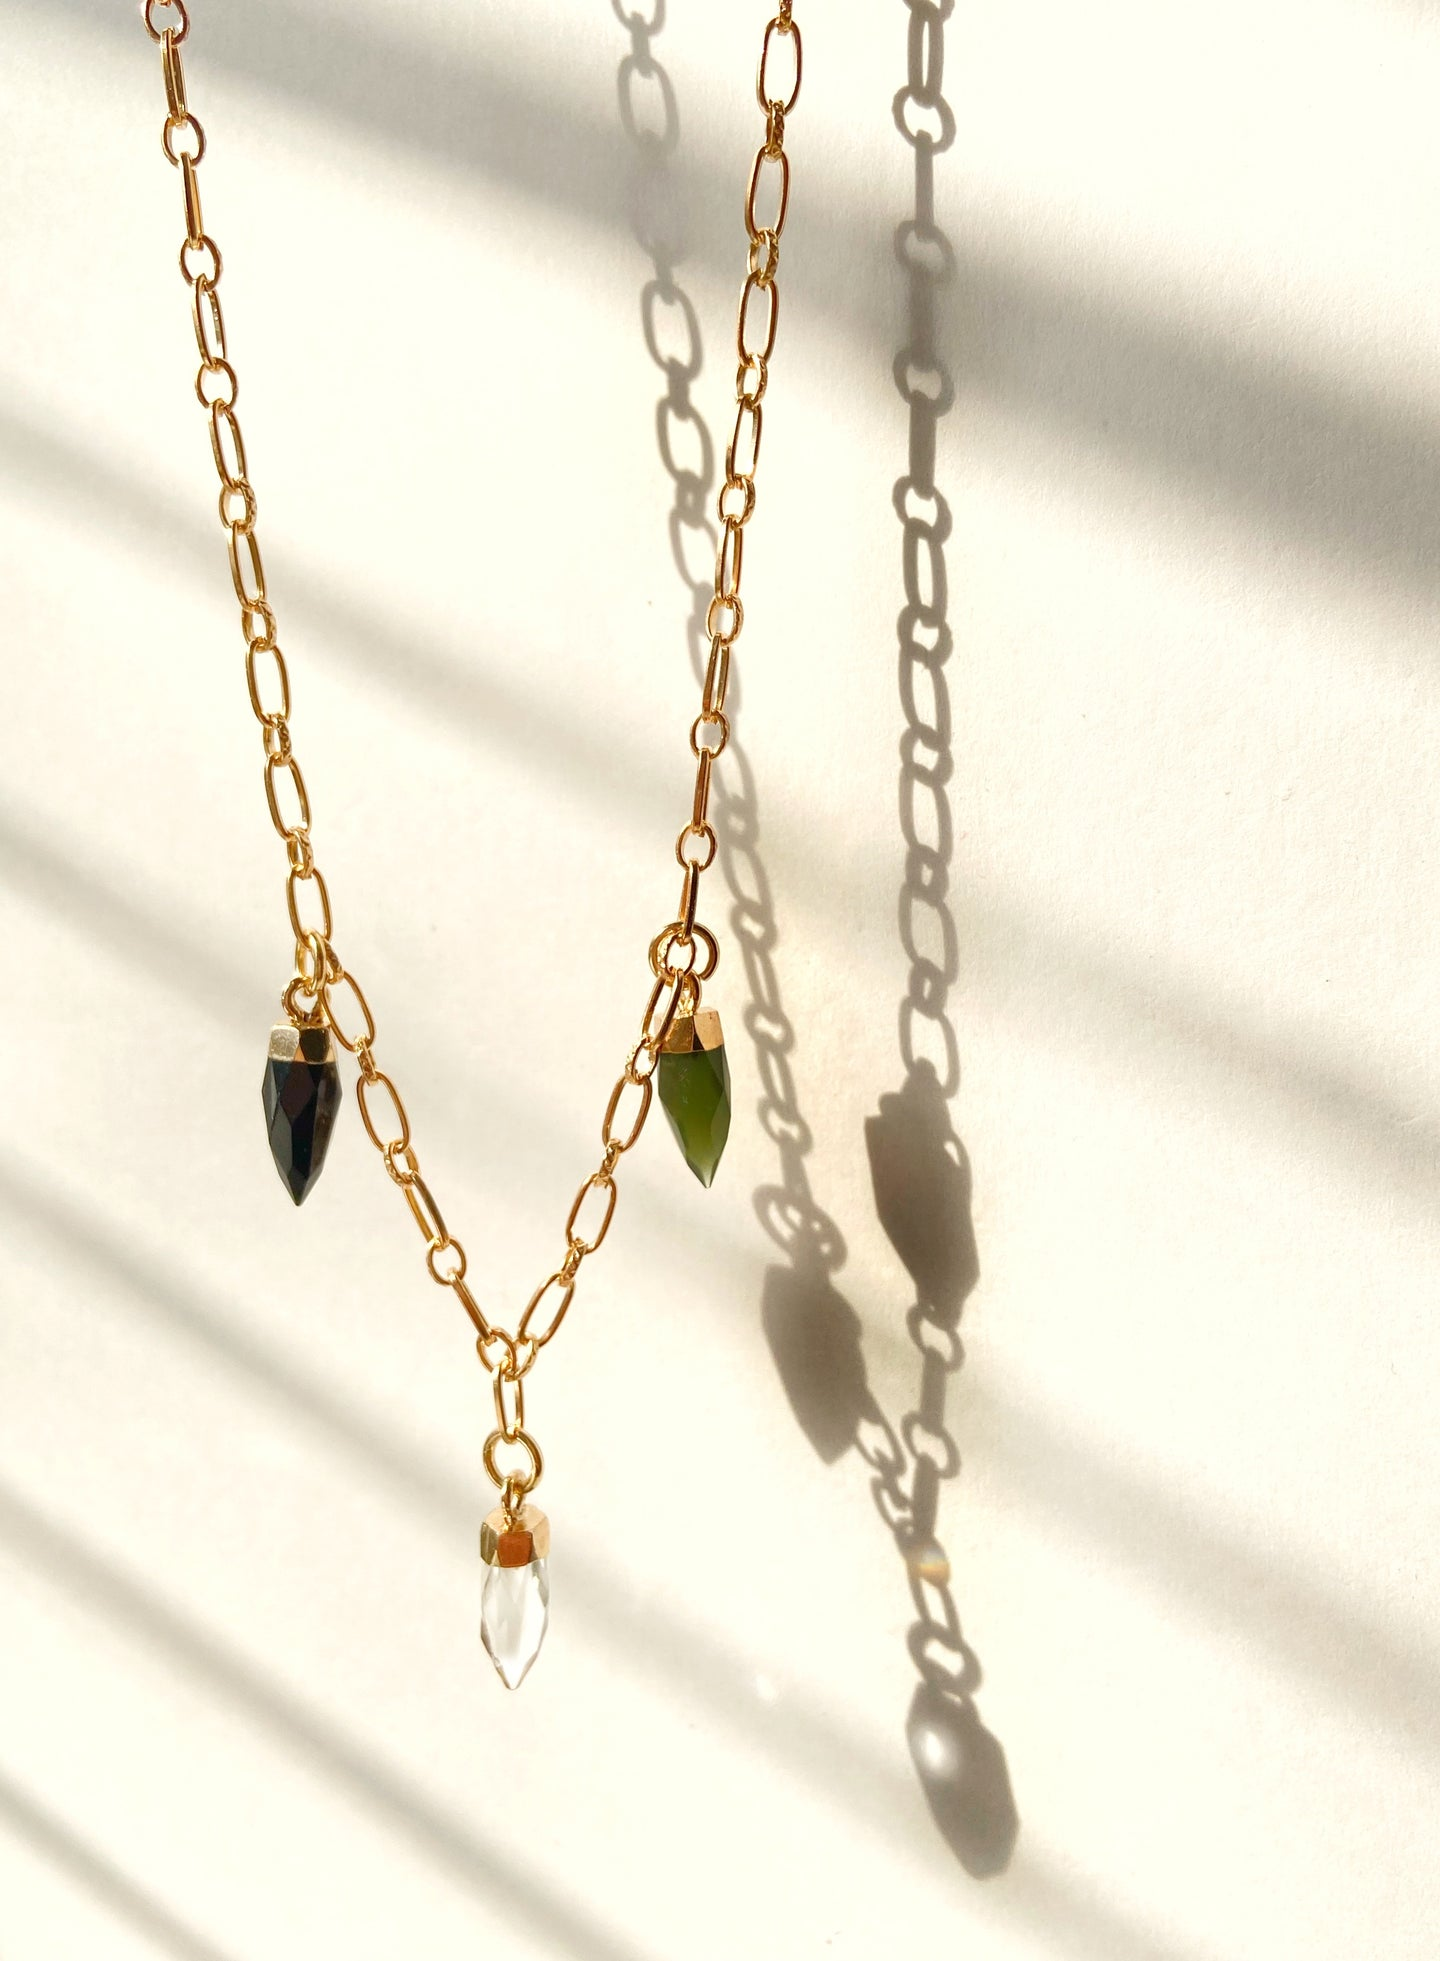 three faceted crystal dagger charms on a gold plated chain necklace black crystal, clear quartz crystal, green crystal Faceted Dagger Necklace Shadow